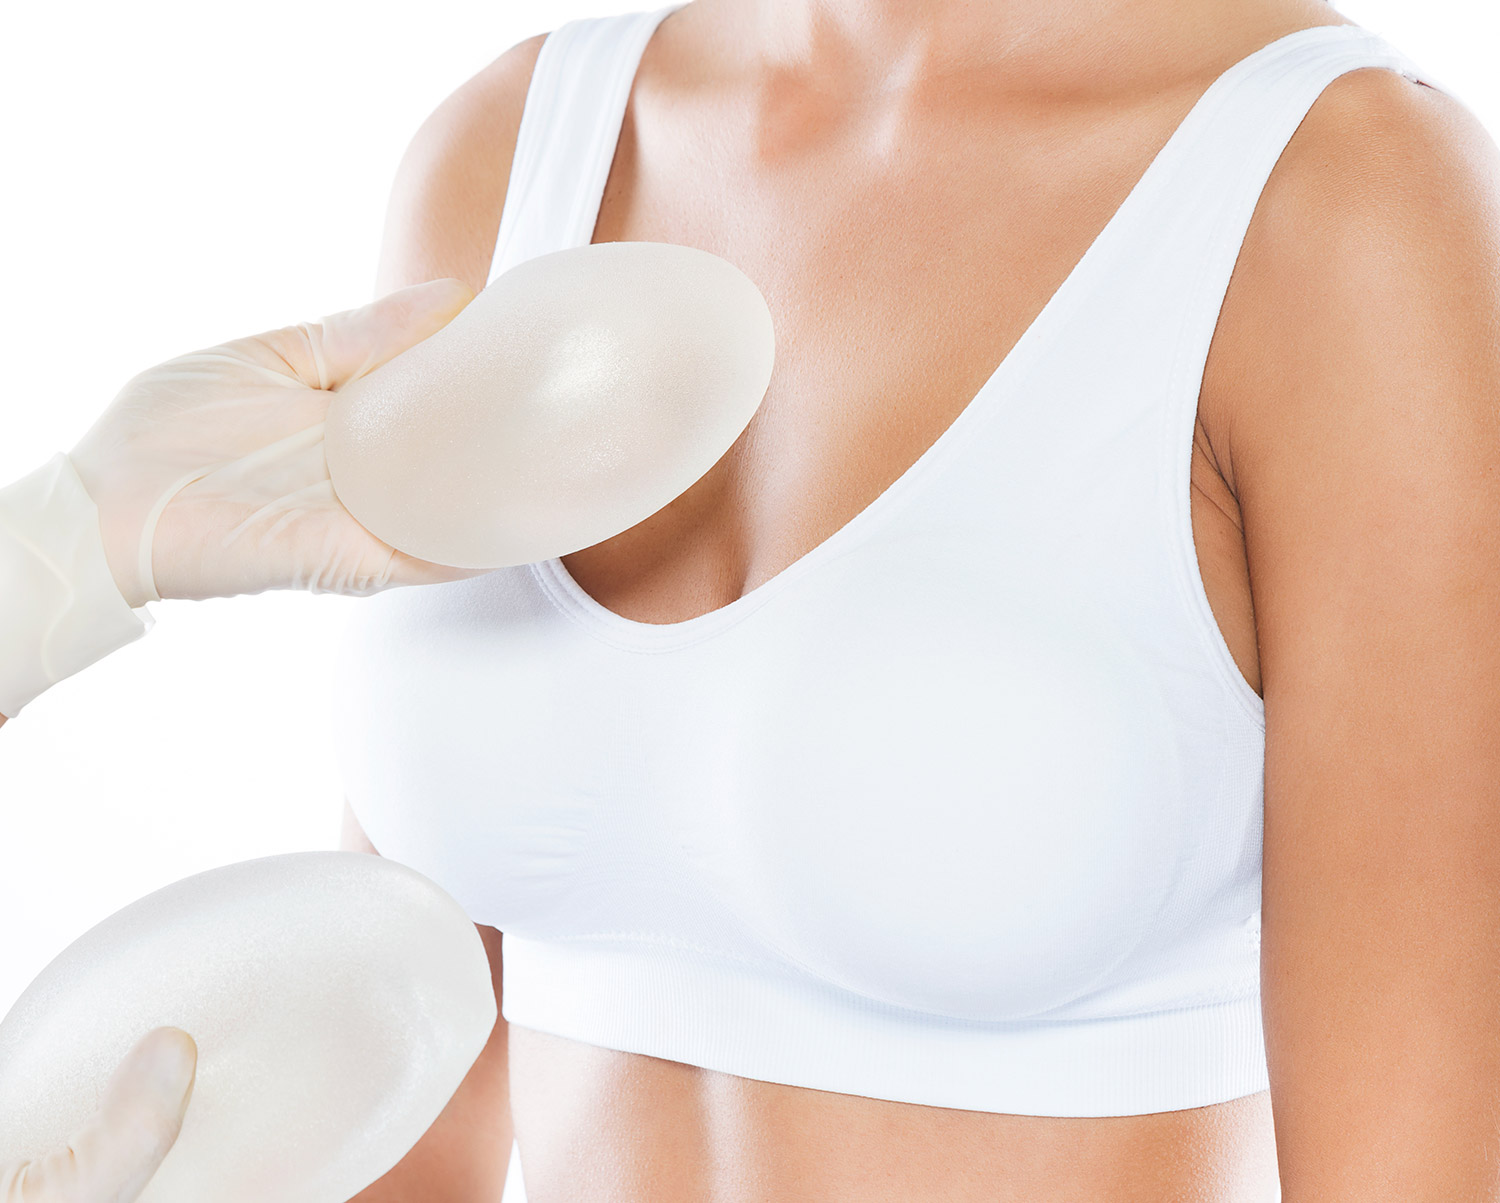 breast implant removal example image